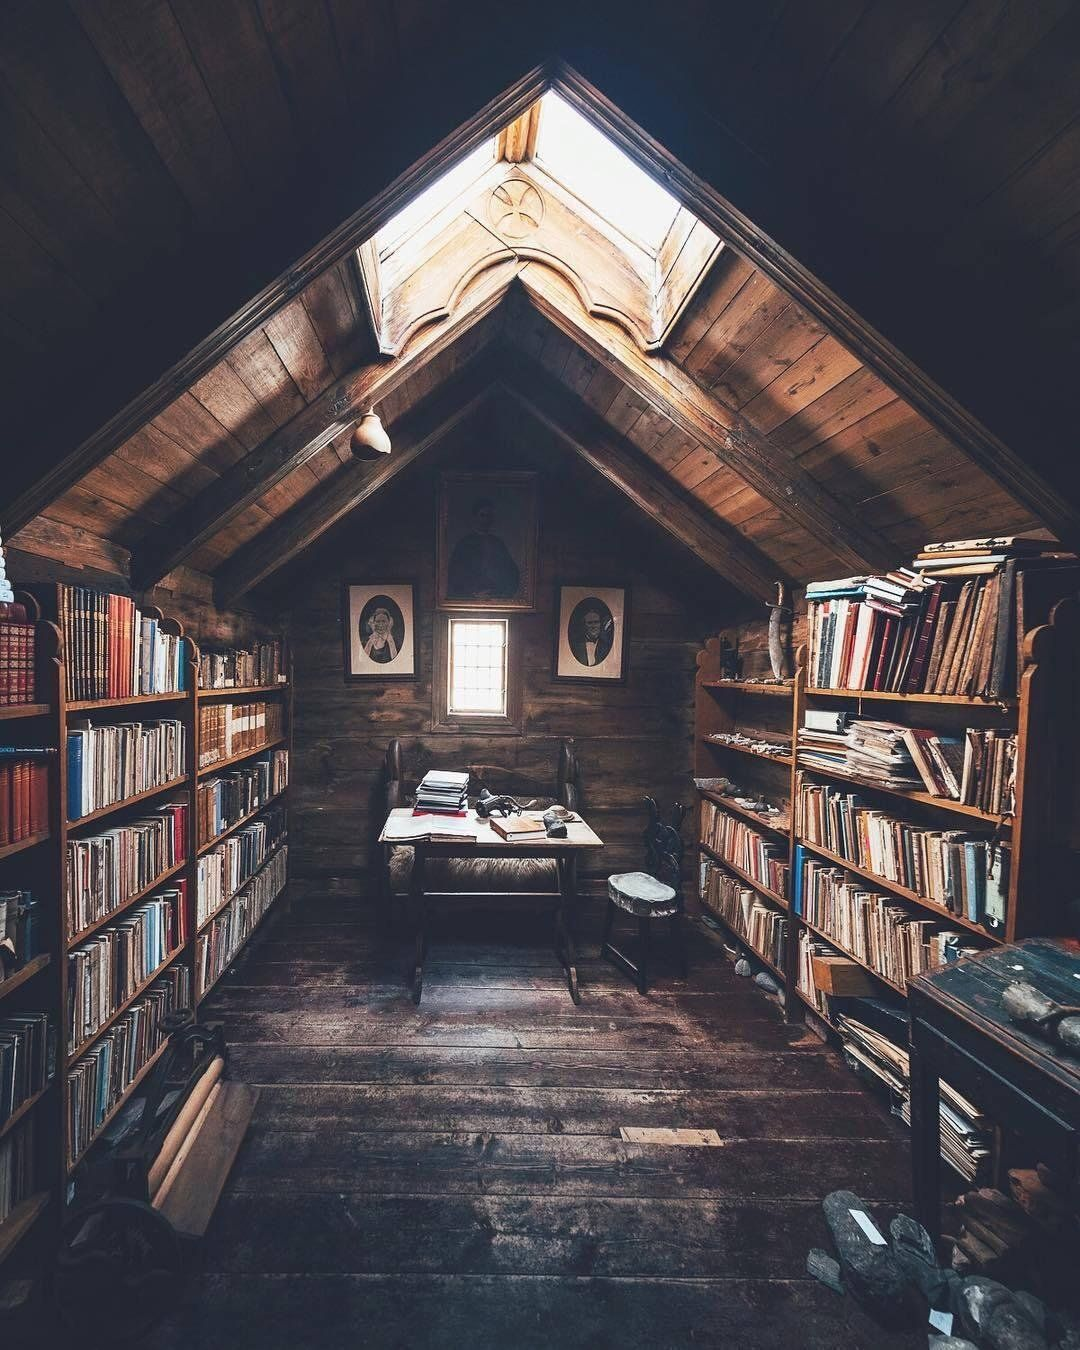 Home Library Loft: An Attic In A Cabin Set Up To Be A Library : CozyPlaces